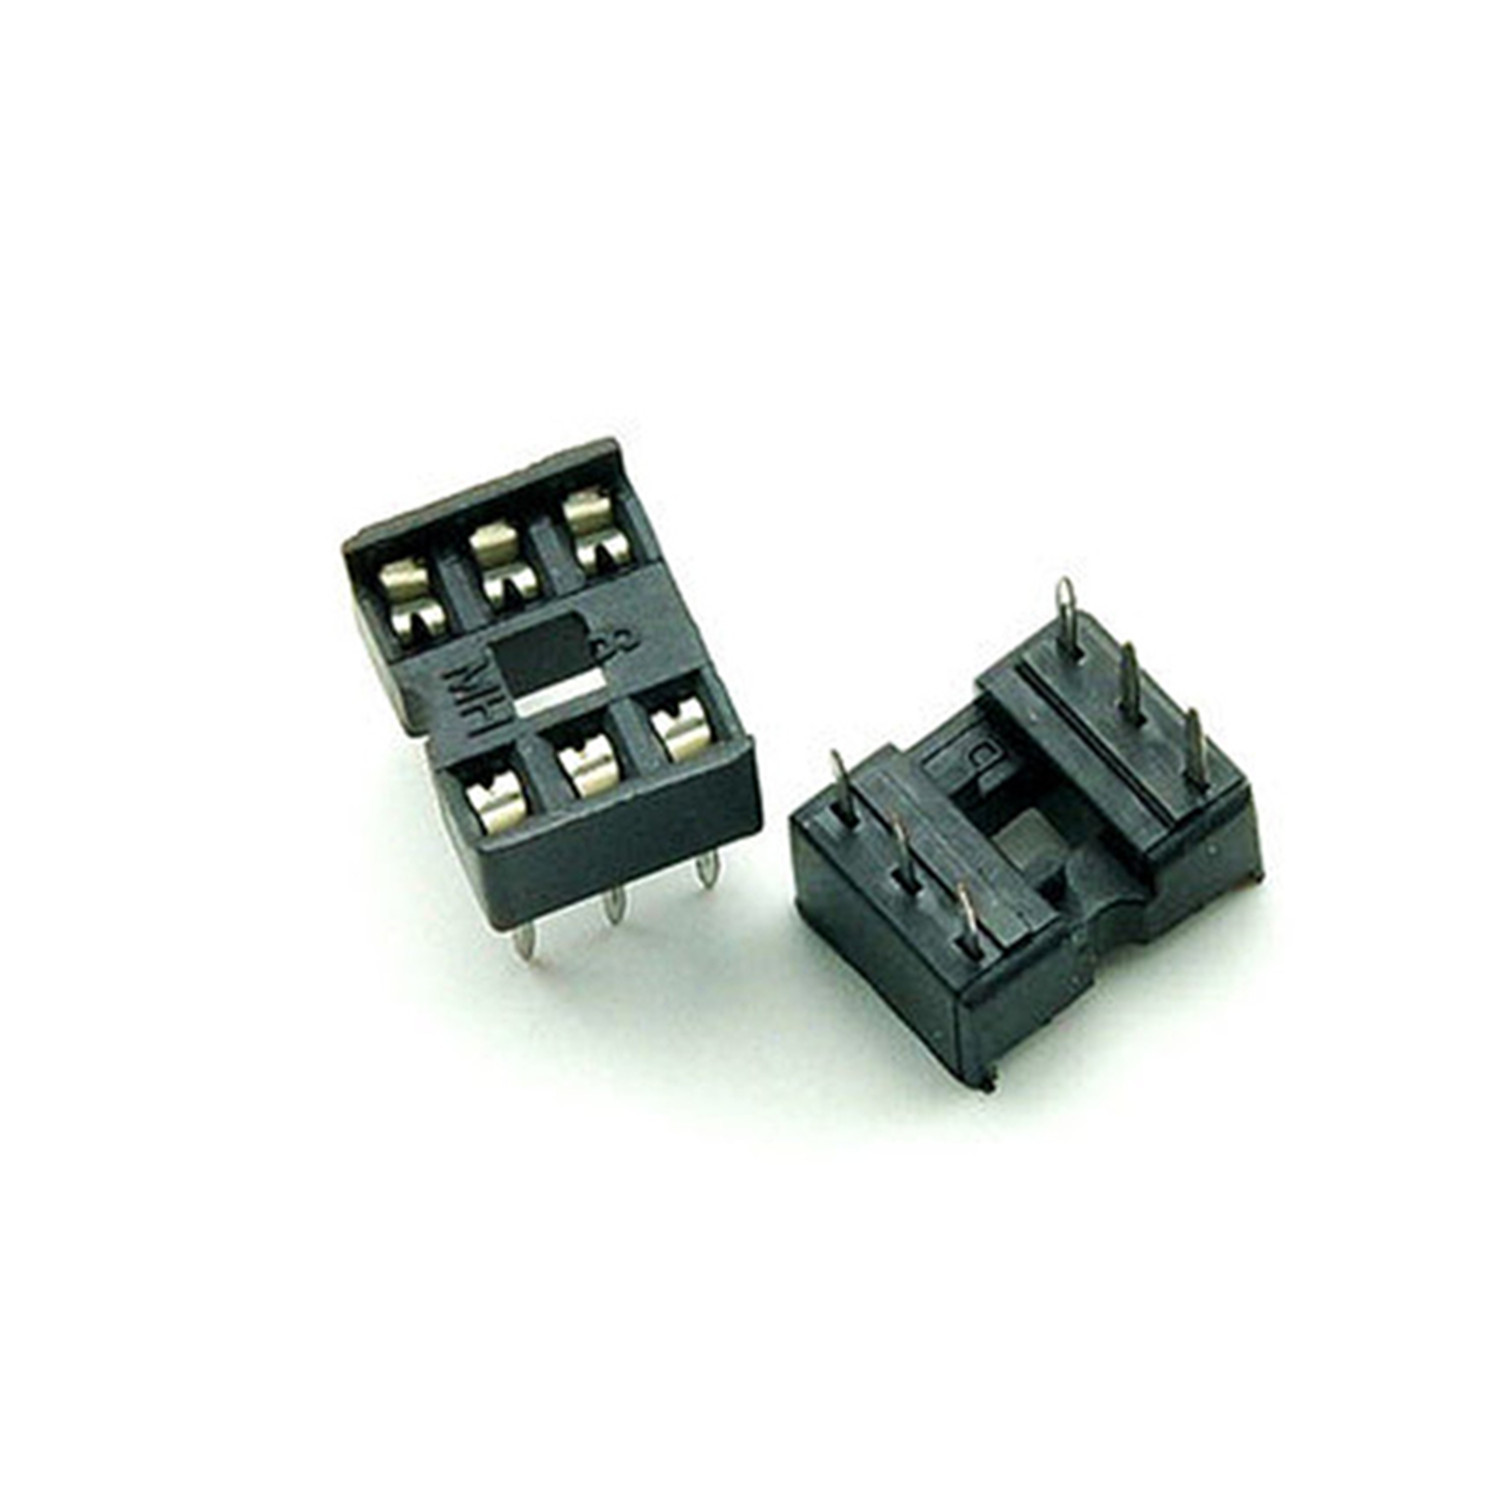 цены на 80PCS/Lot 6 Pin DIP Square Hole IC Sockets Adapter 6Pin Pitch 2.54mm Connector в интернет-магазинах